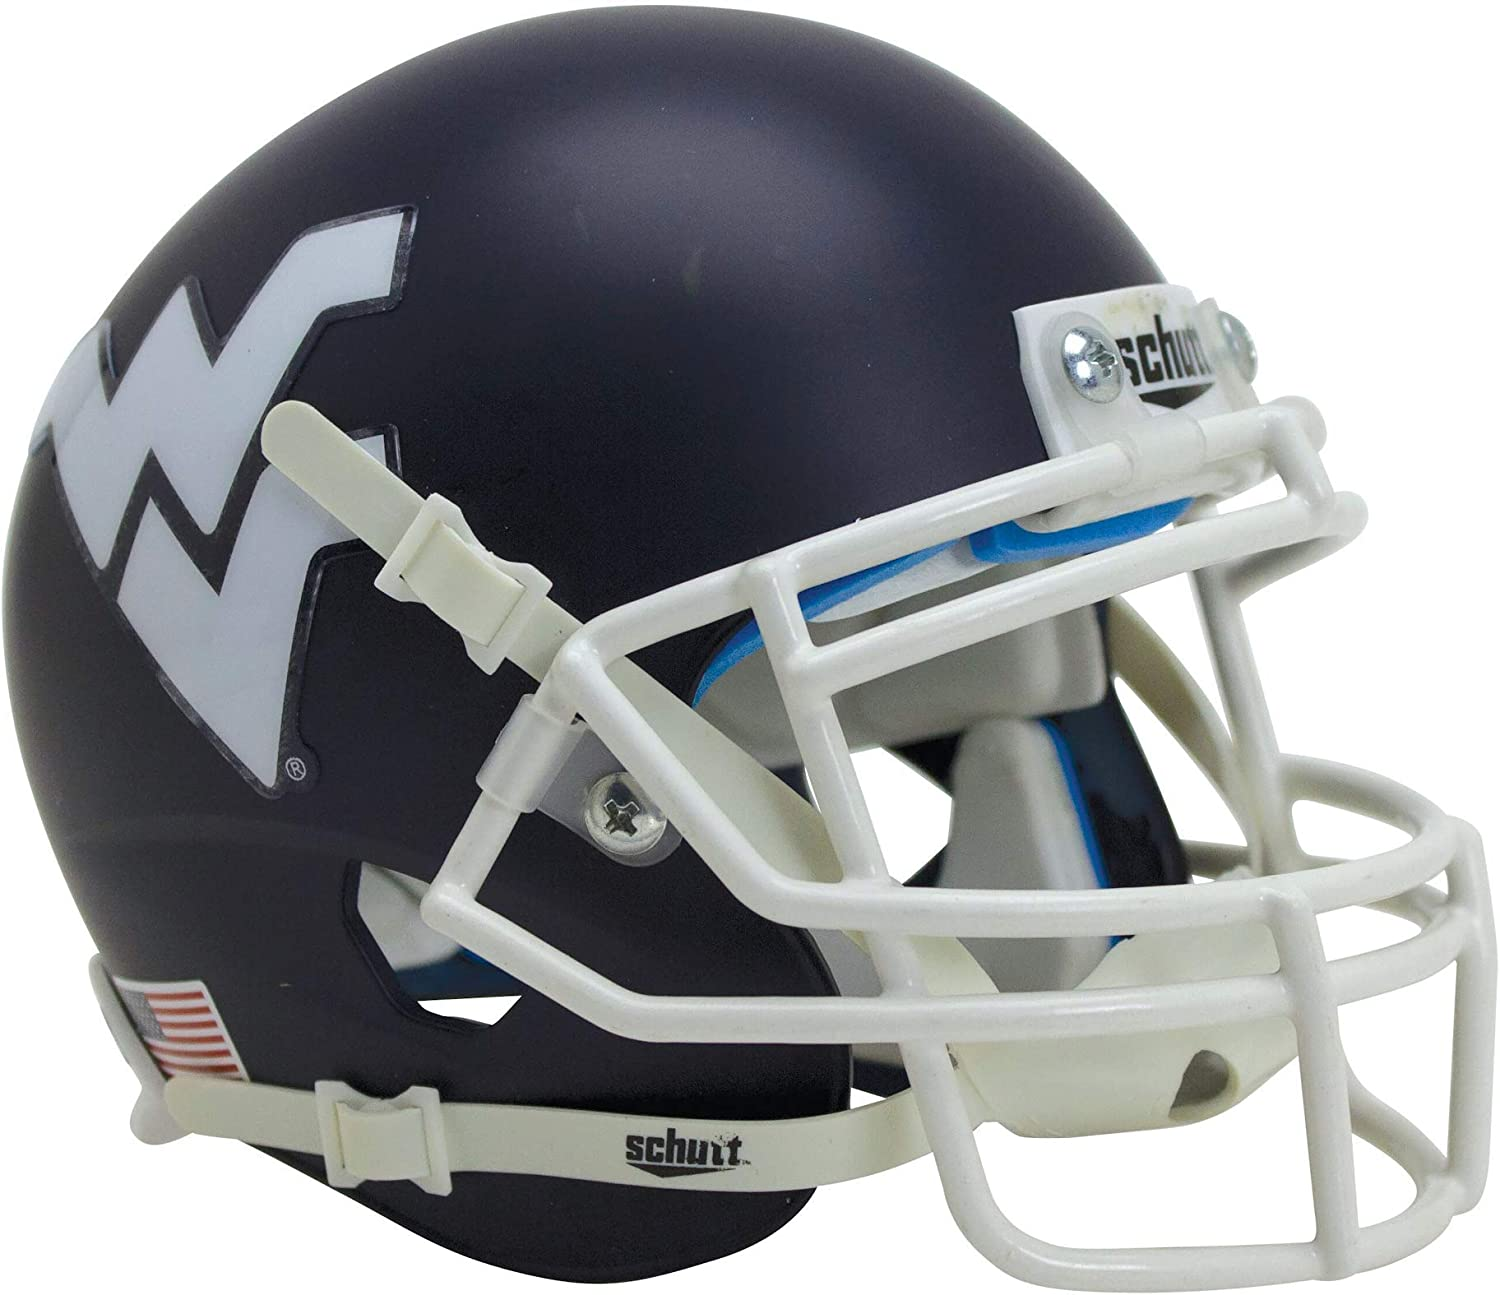 Schutt NCAA West Virginia Mountaineers XP Helme Super Special SALE held Football Replica Genuine Free Shipping